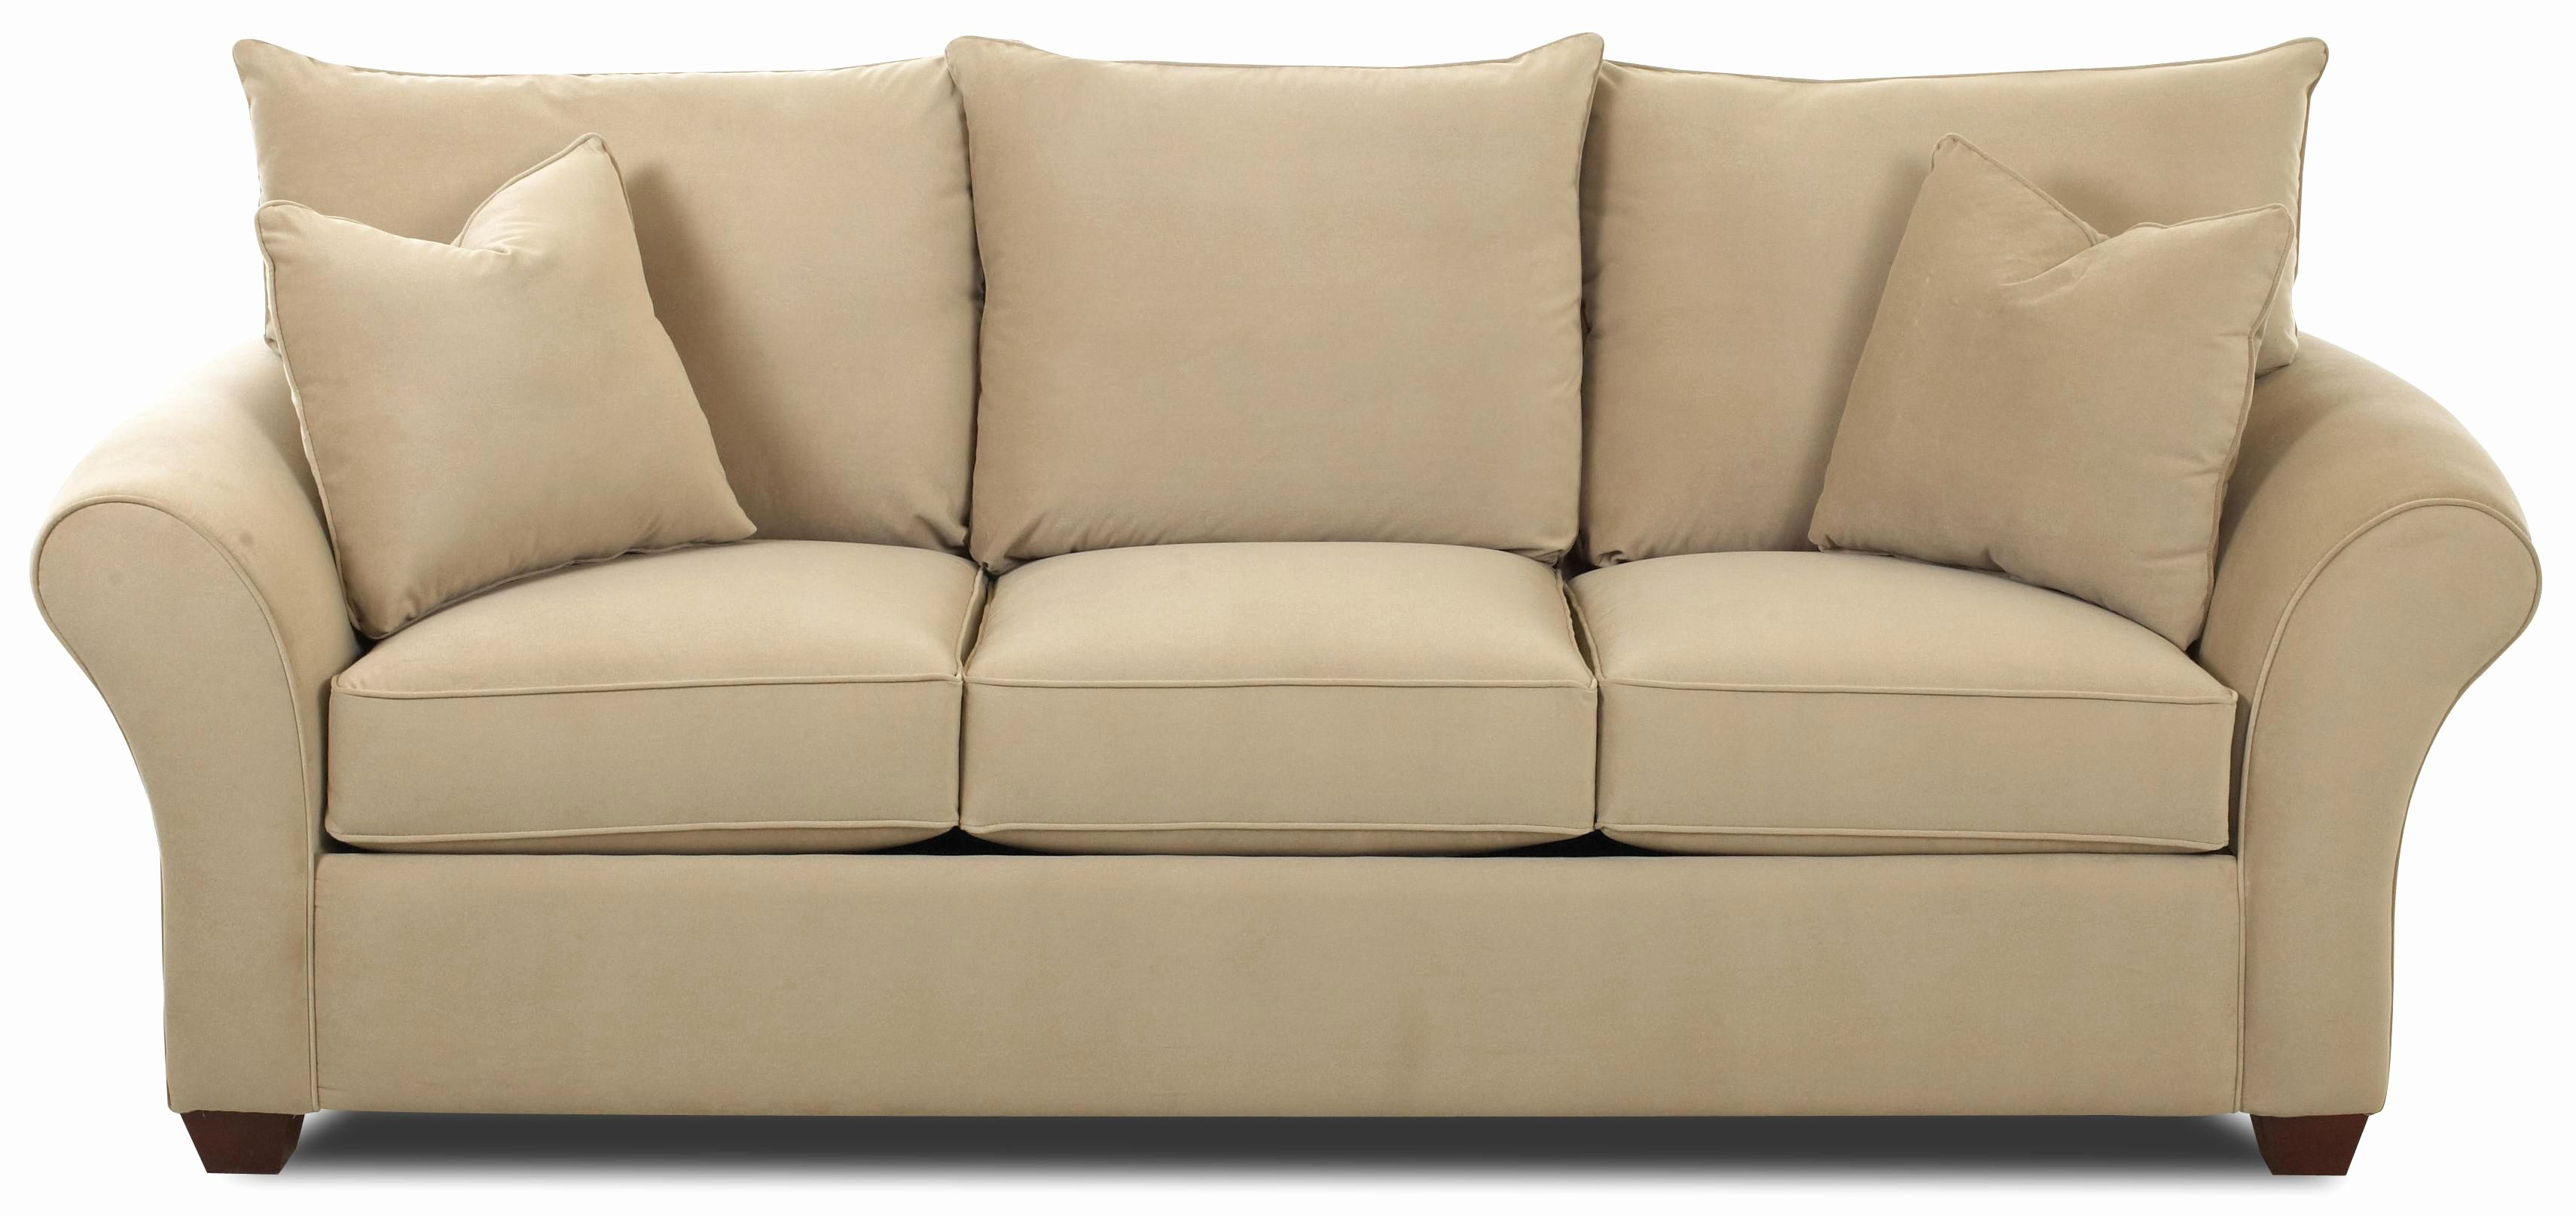 Best Of Comfortable Contemporary Sofa Image Fancy Couch 67 On Inspiration With